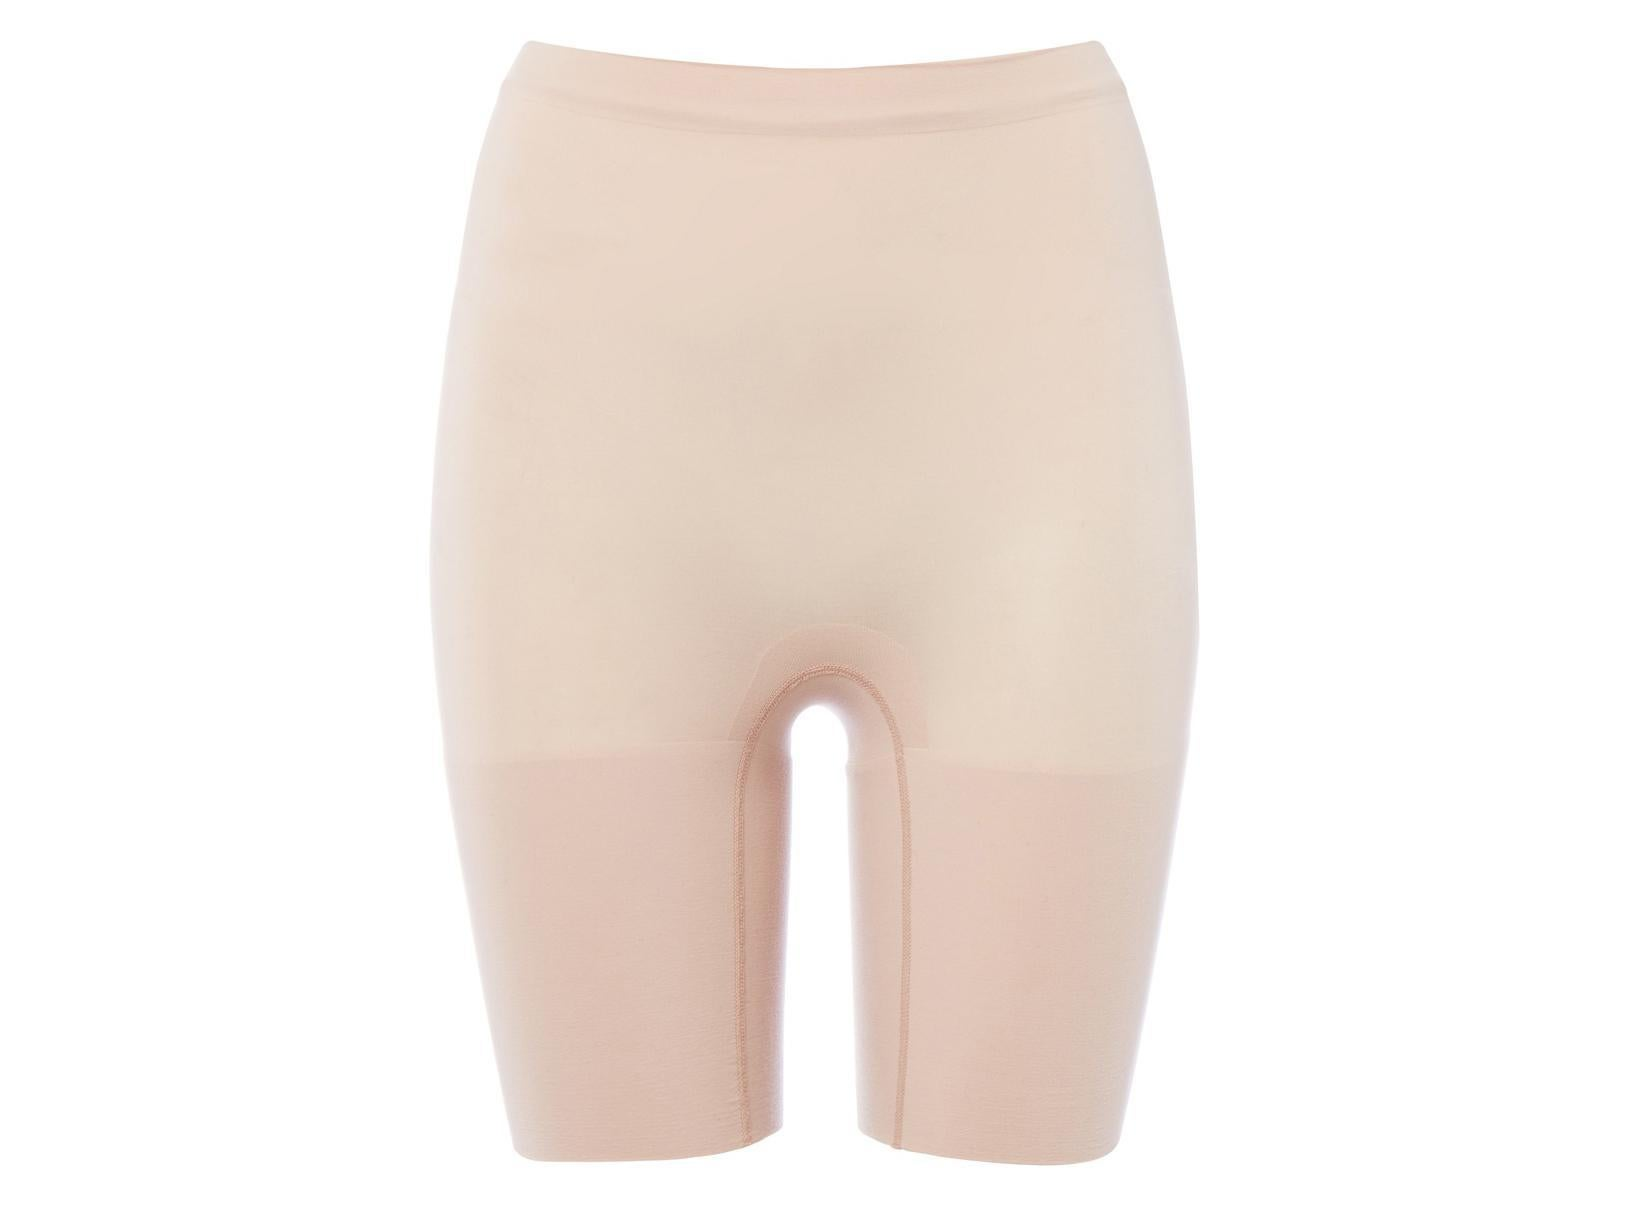 10 best shapewear | The Independent